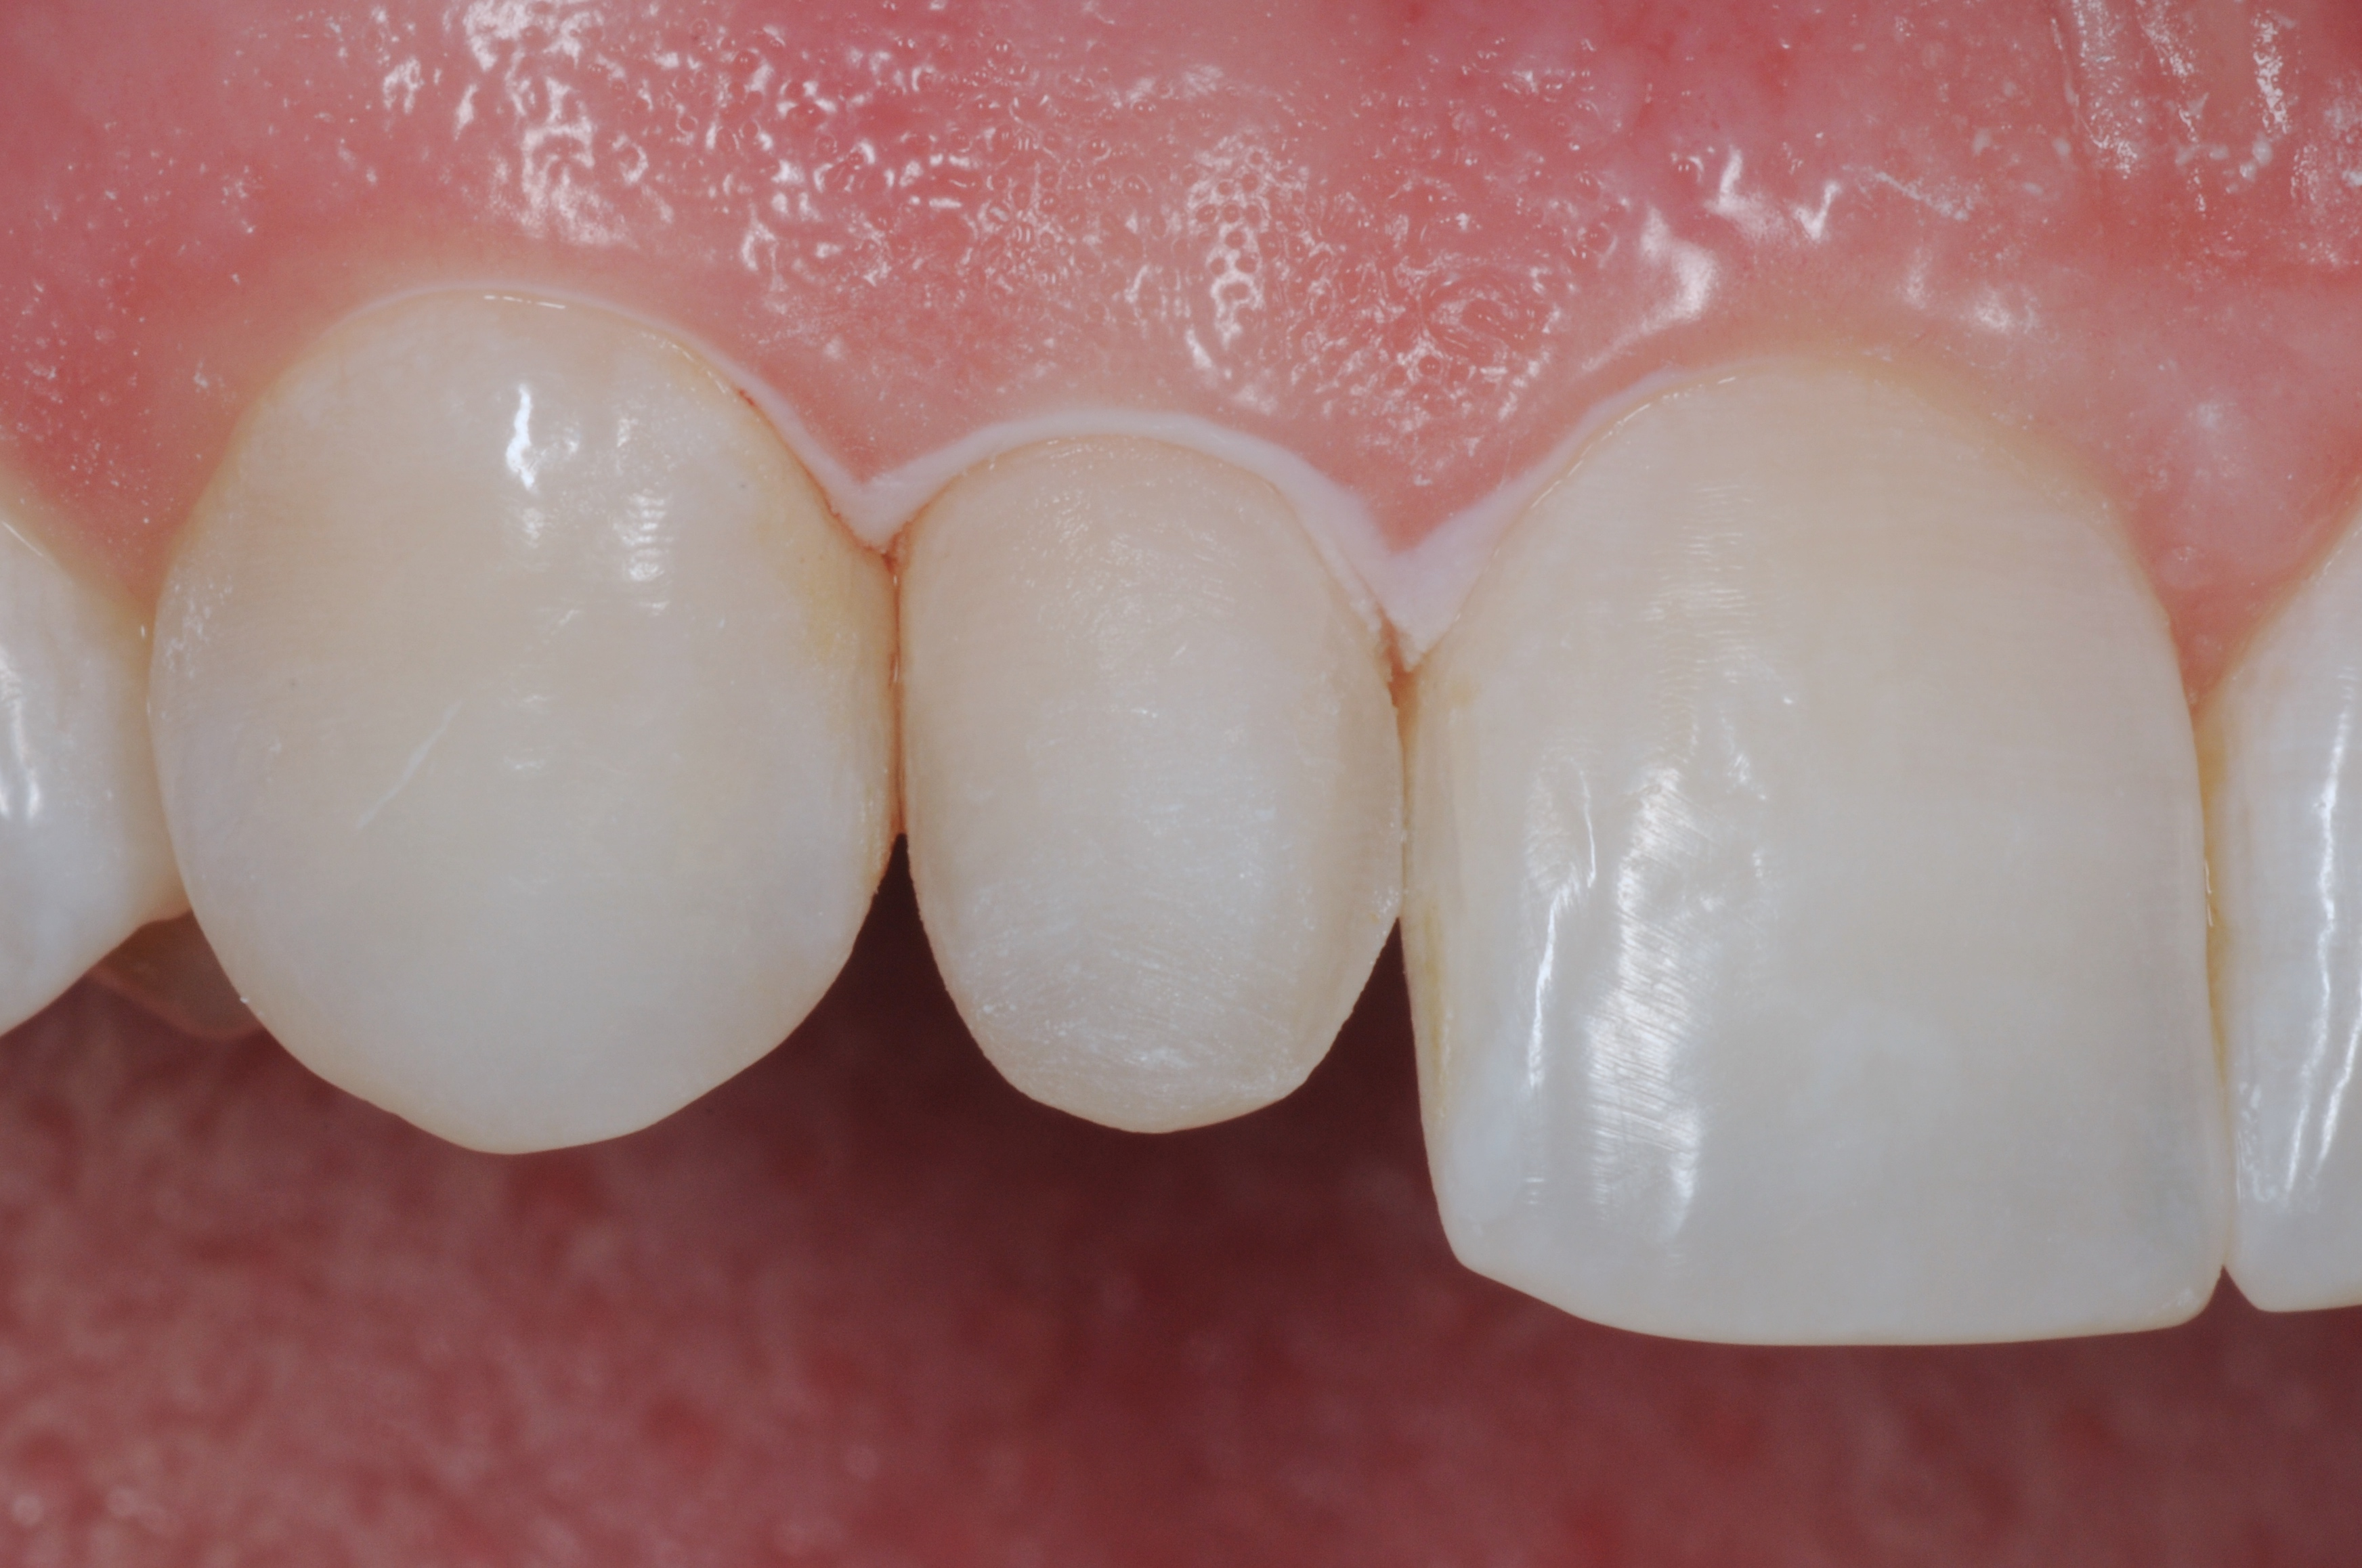 Removal of the Old Veneers